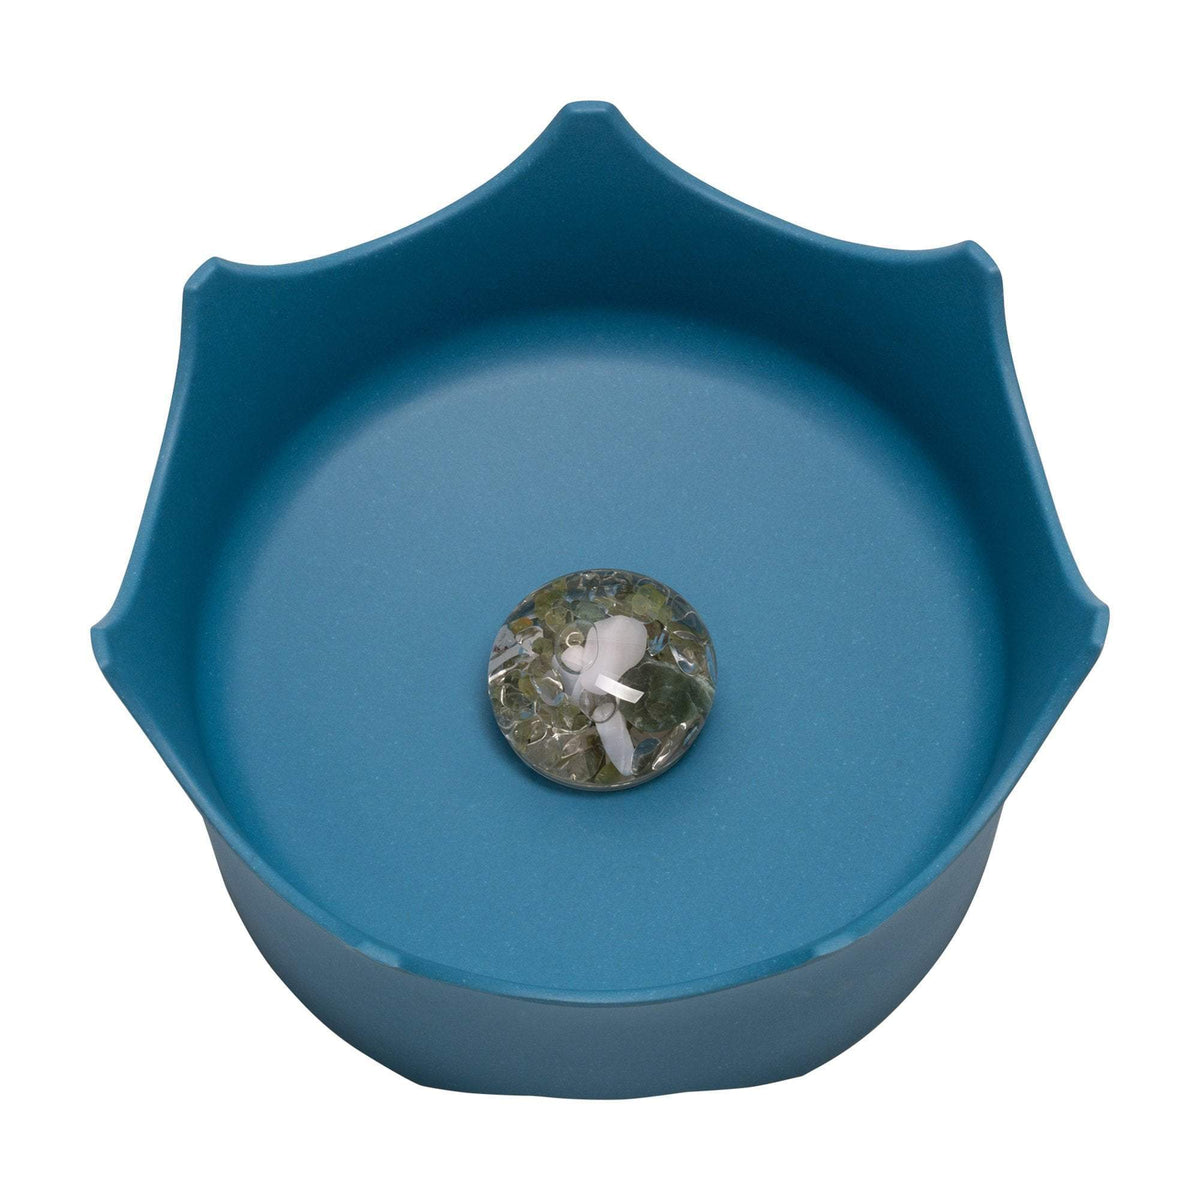 VitaJuwel CrownJuwel Pet Bowl, Ocean Blue